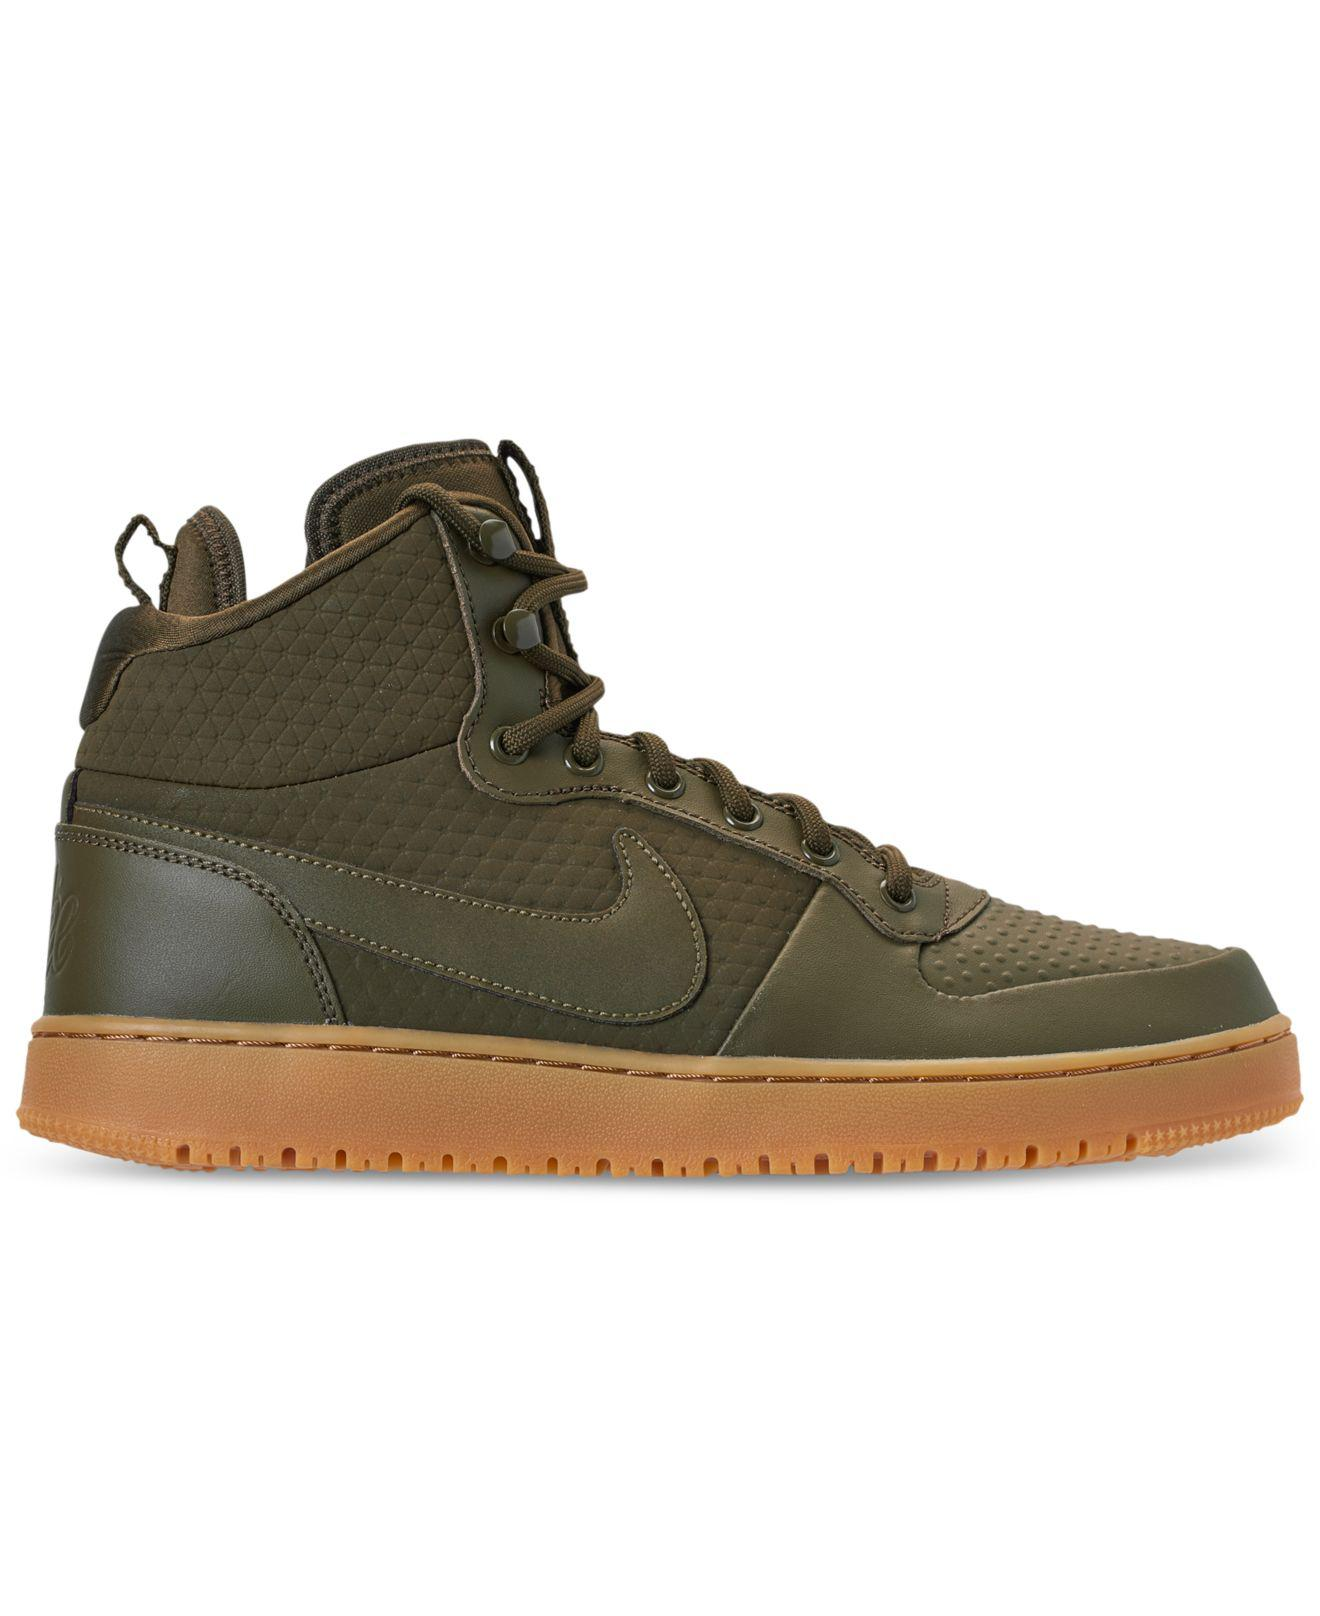 0b76e9407bbc2 Lyst - Nike Ebernon Mid Winter Casual Sneakers From Finish Line in Green  for Men